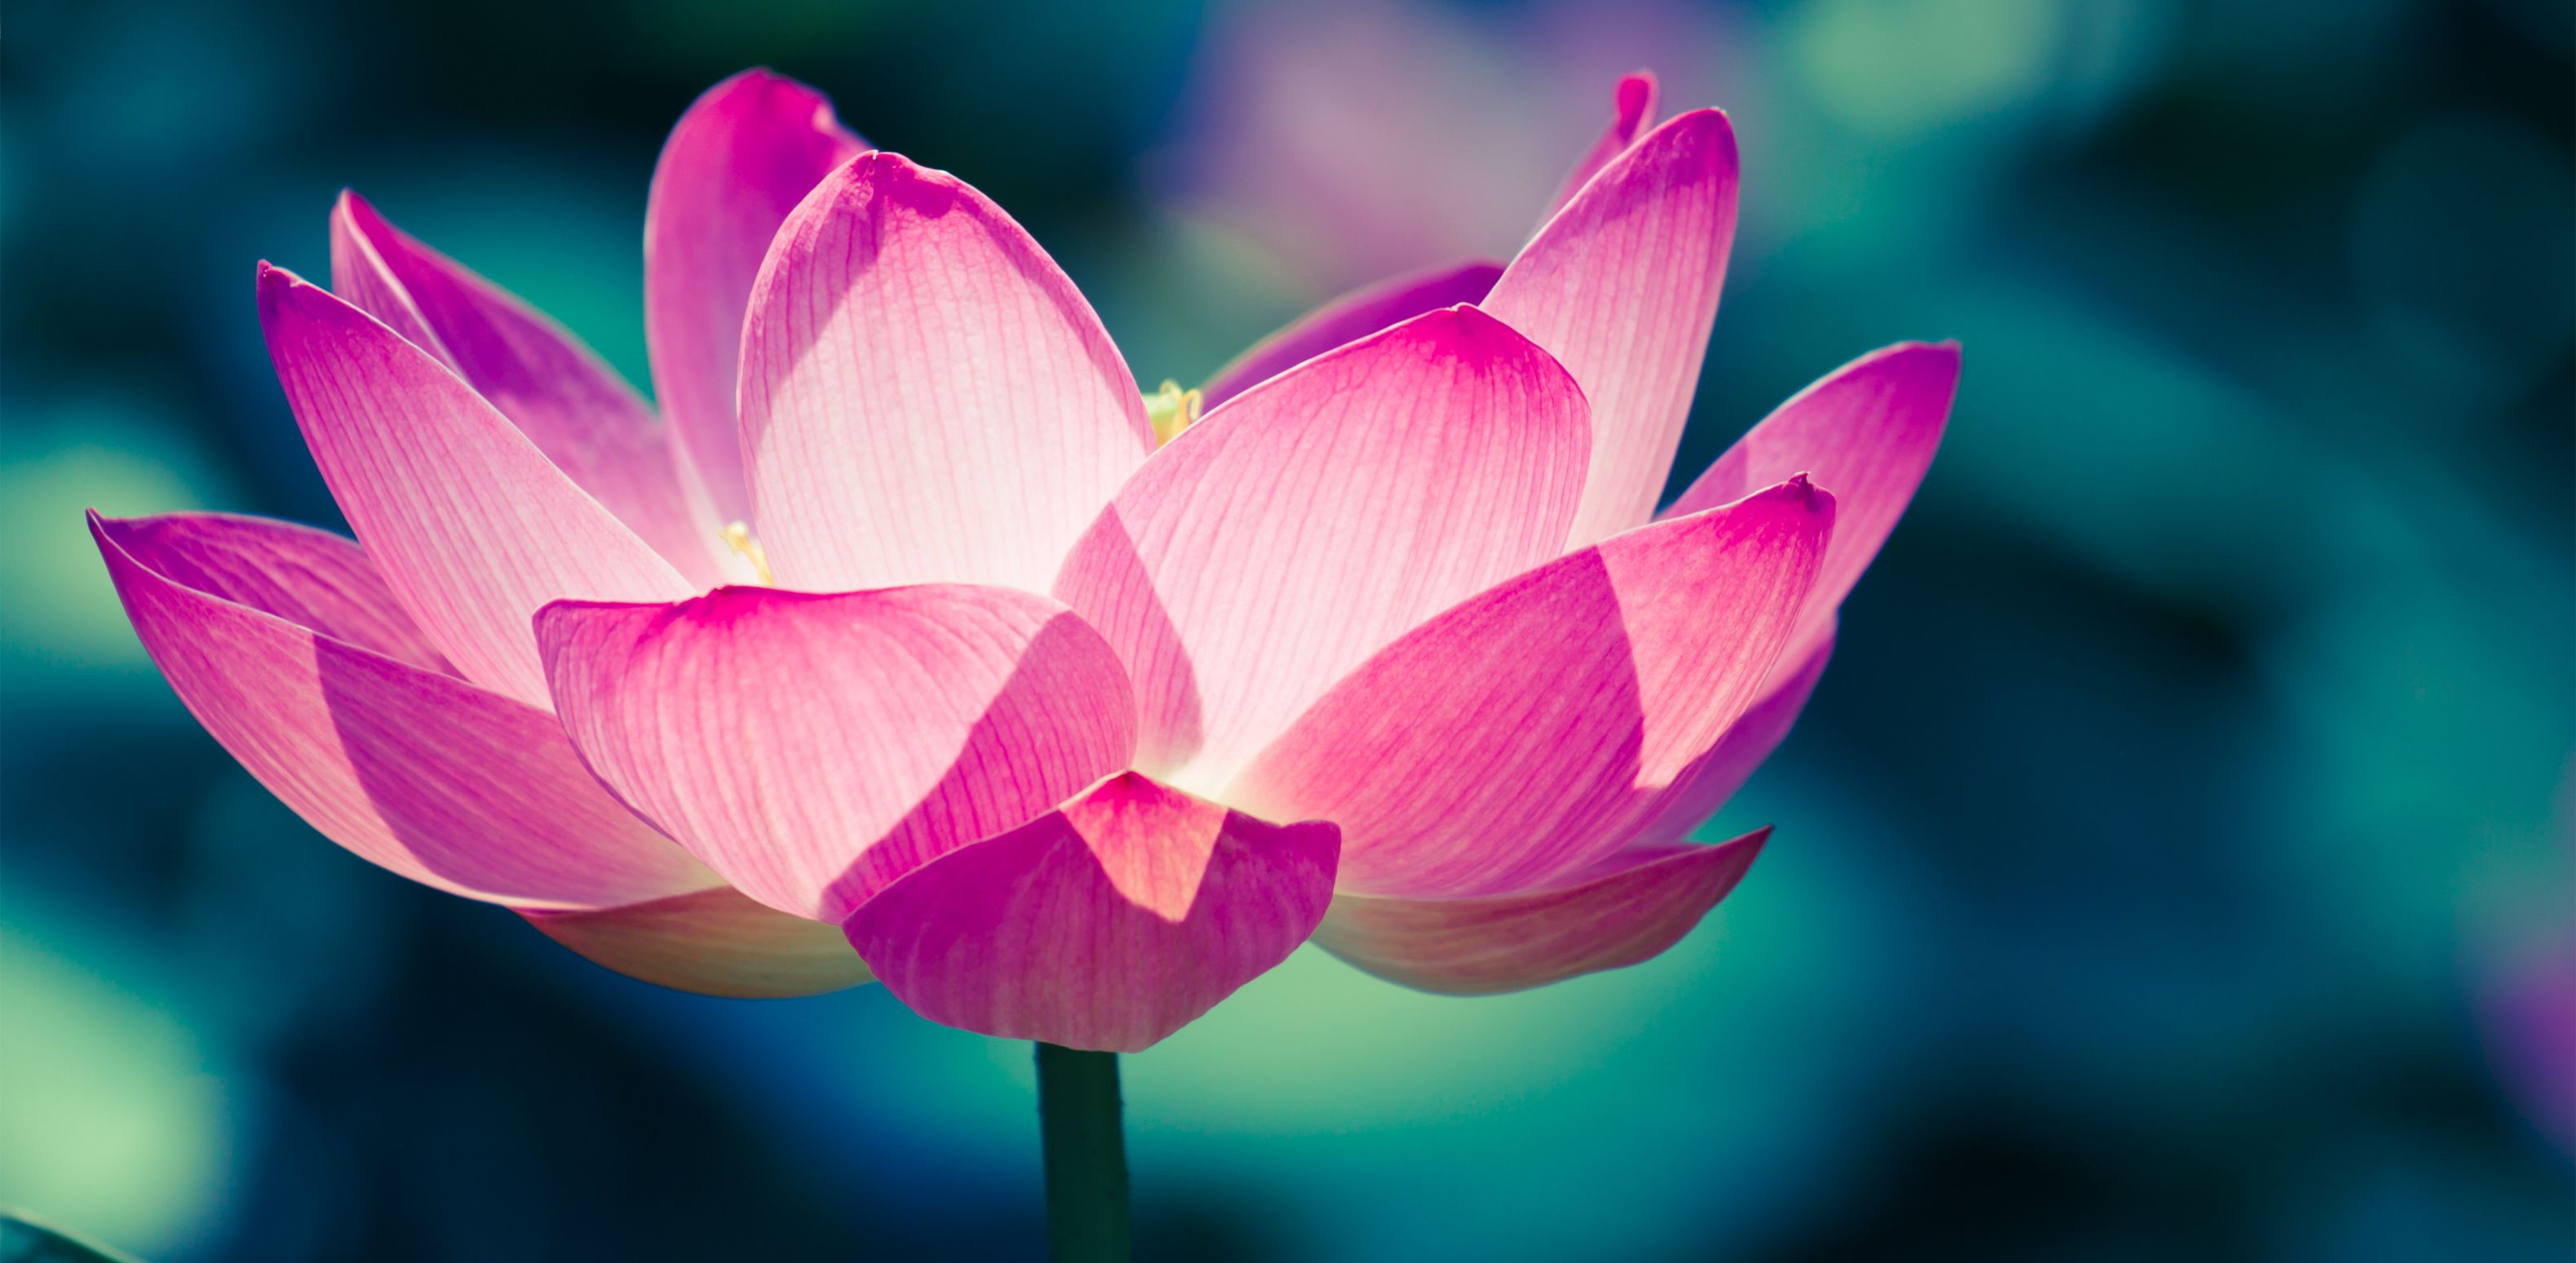 The Secret Meaning of the Lotus Flower